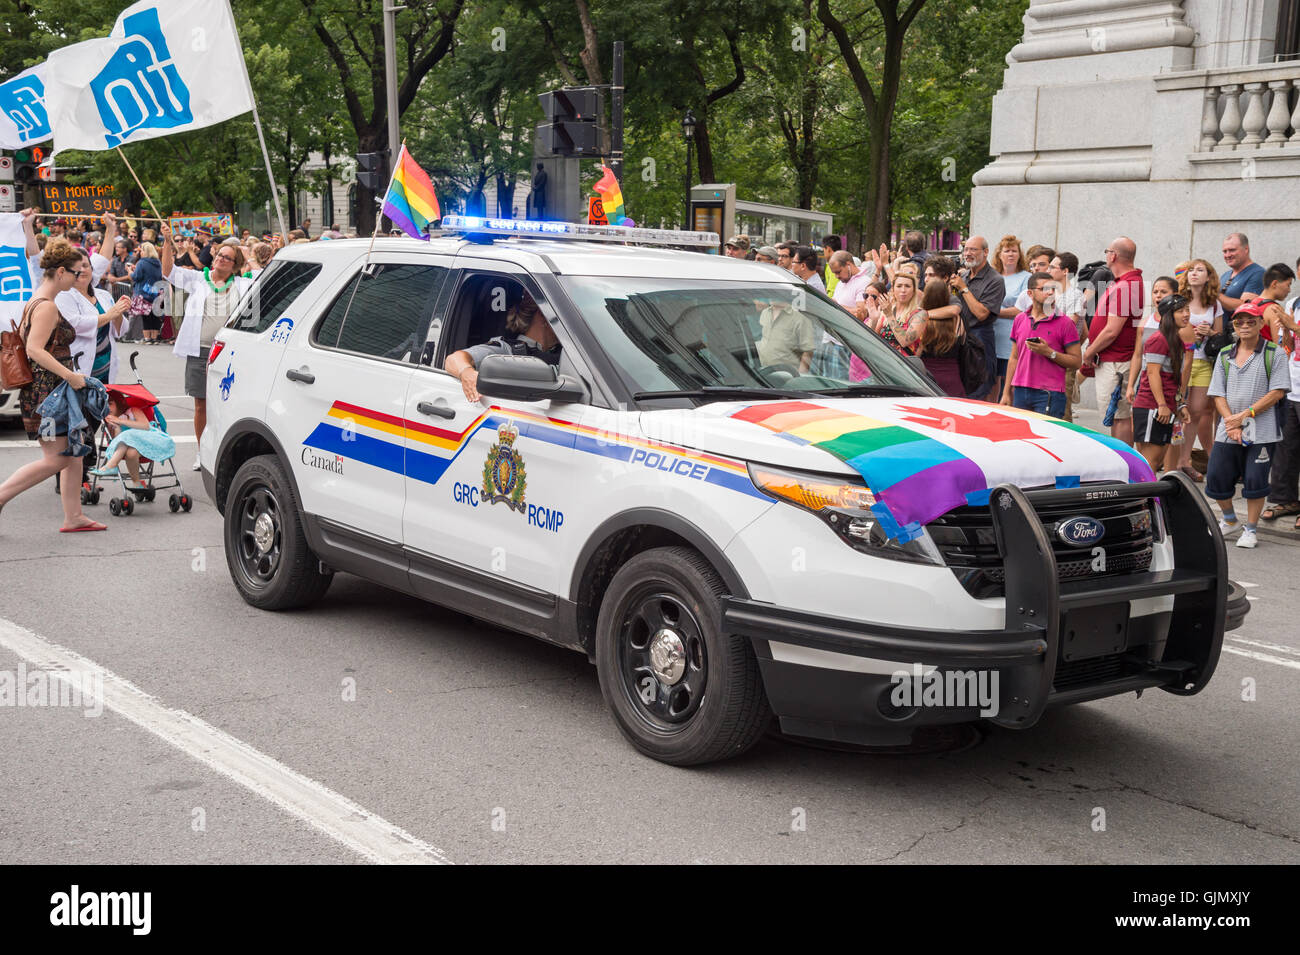 Montreal, CA - 14 August 2016: A car of the Royal Canadian Mounted Police